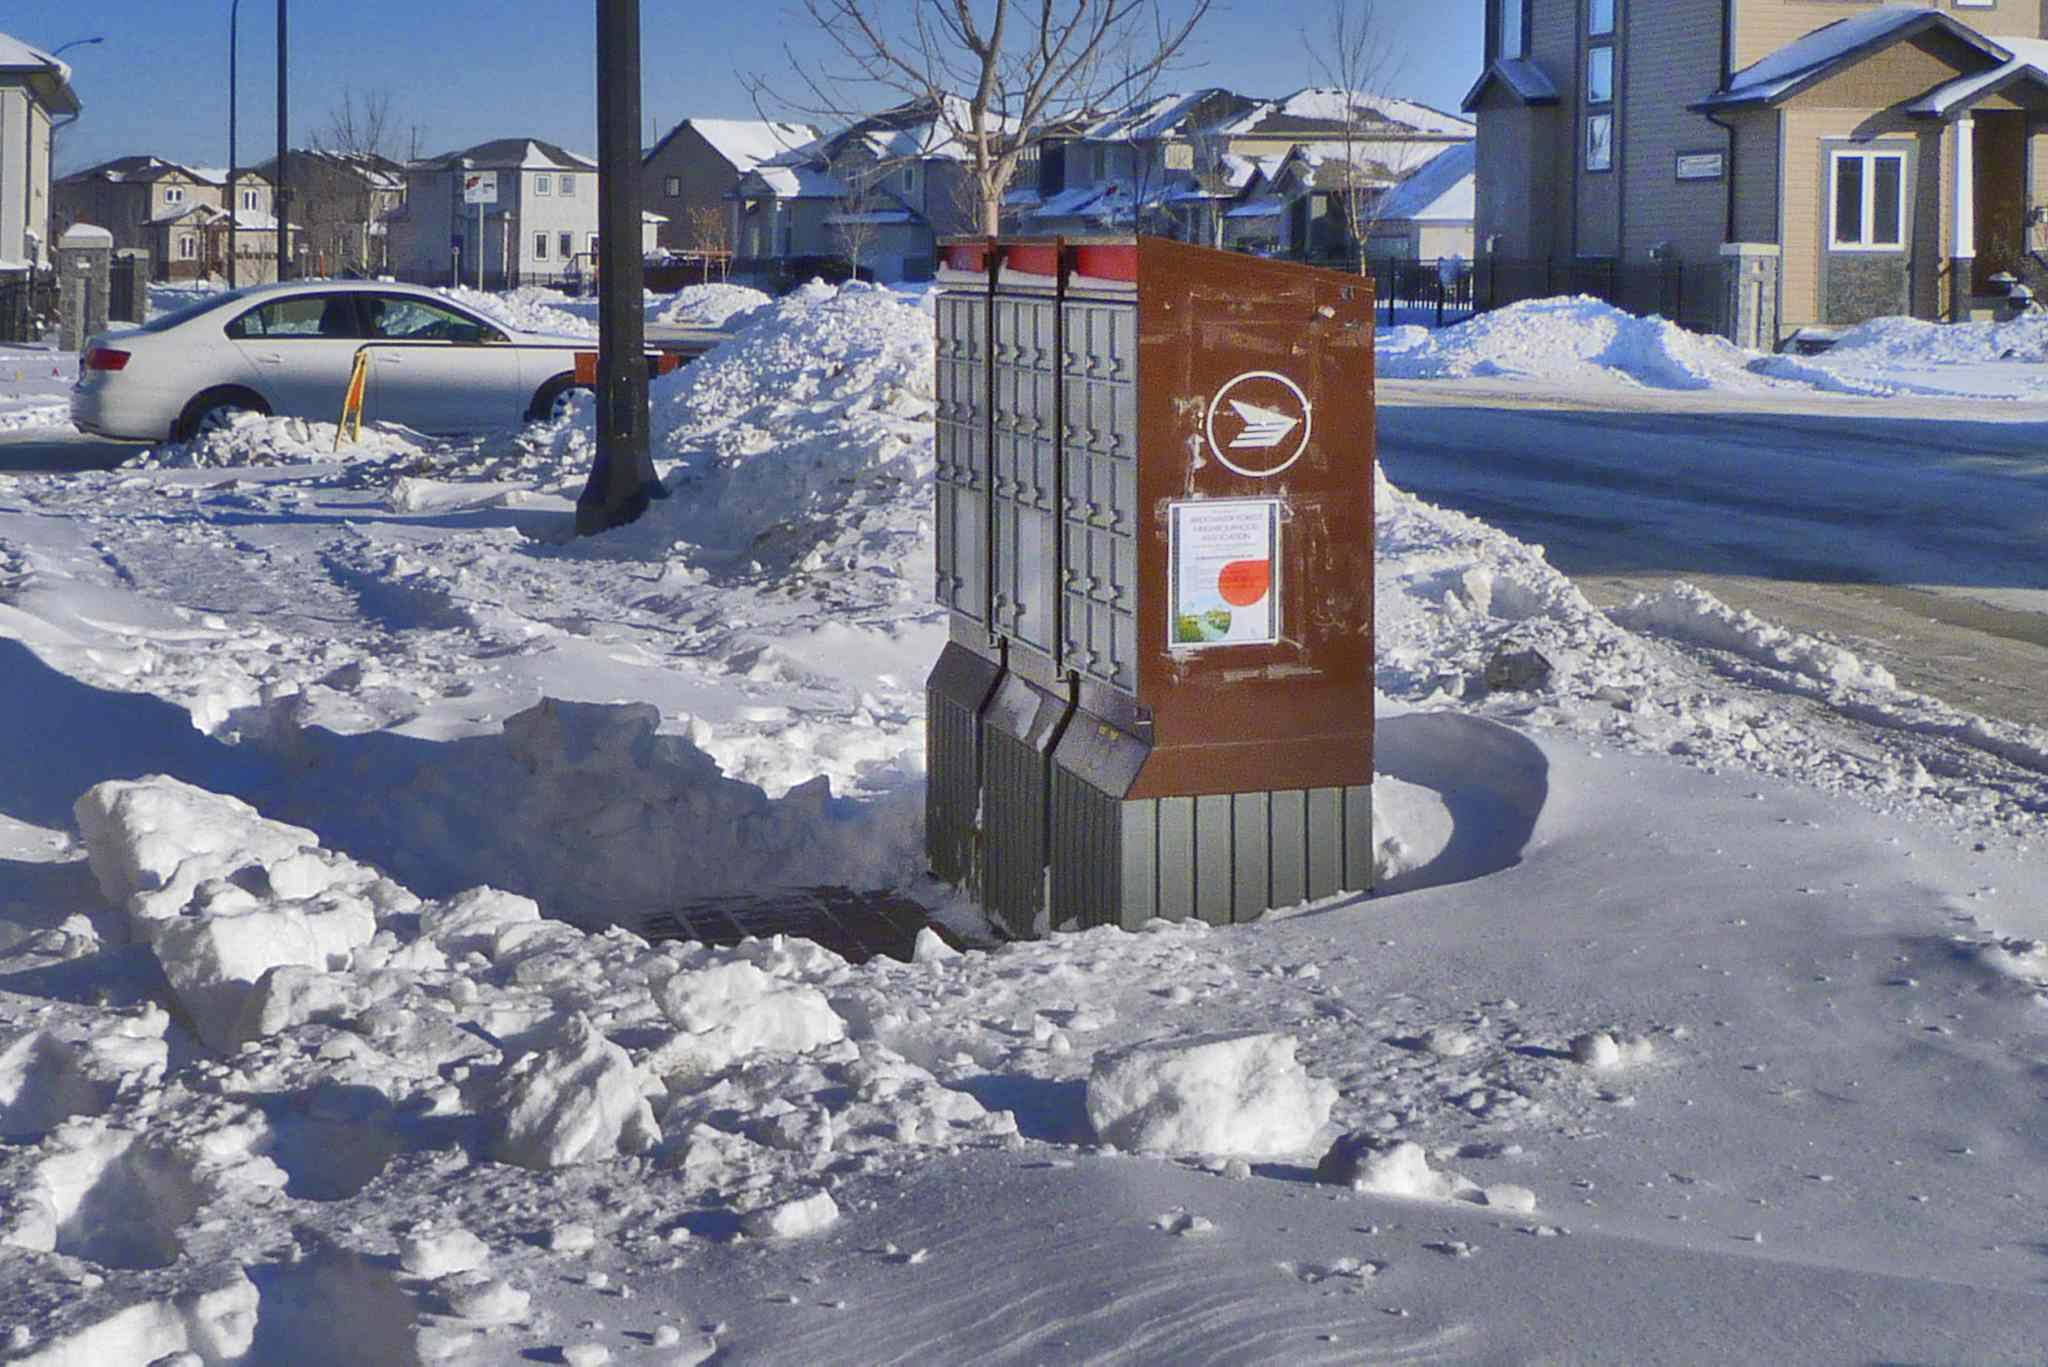 A city report says it is Canada Post's responsibility to clear windrows of snow at community mailboxes.